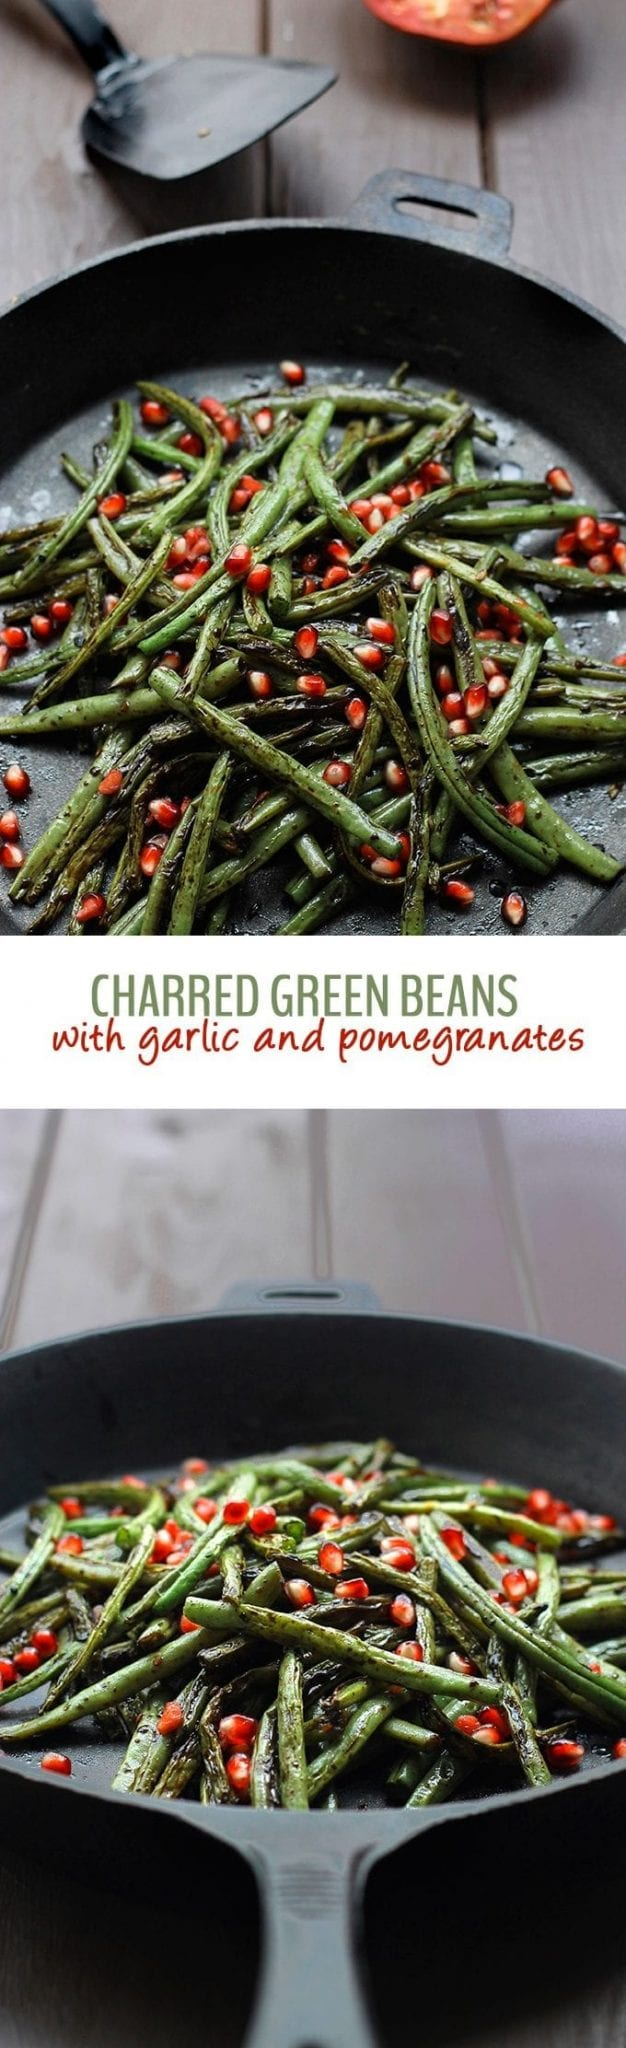 The roasted flavour of the green beans with the pop of sweetness from the pomegranates will make these charred green beans with garlic and pomegranate seeds your new favorite!